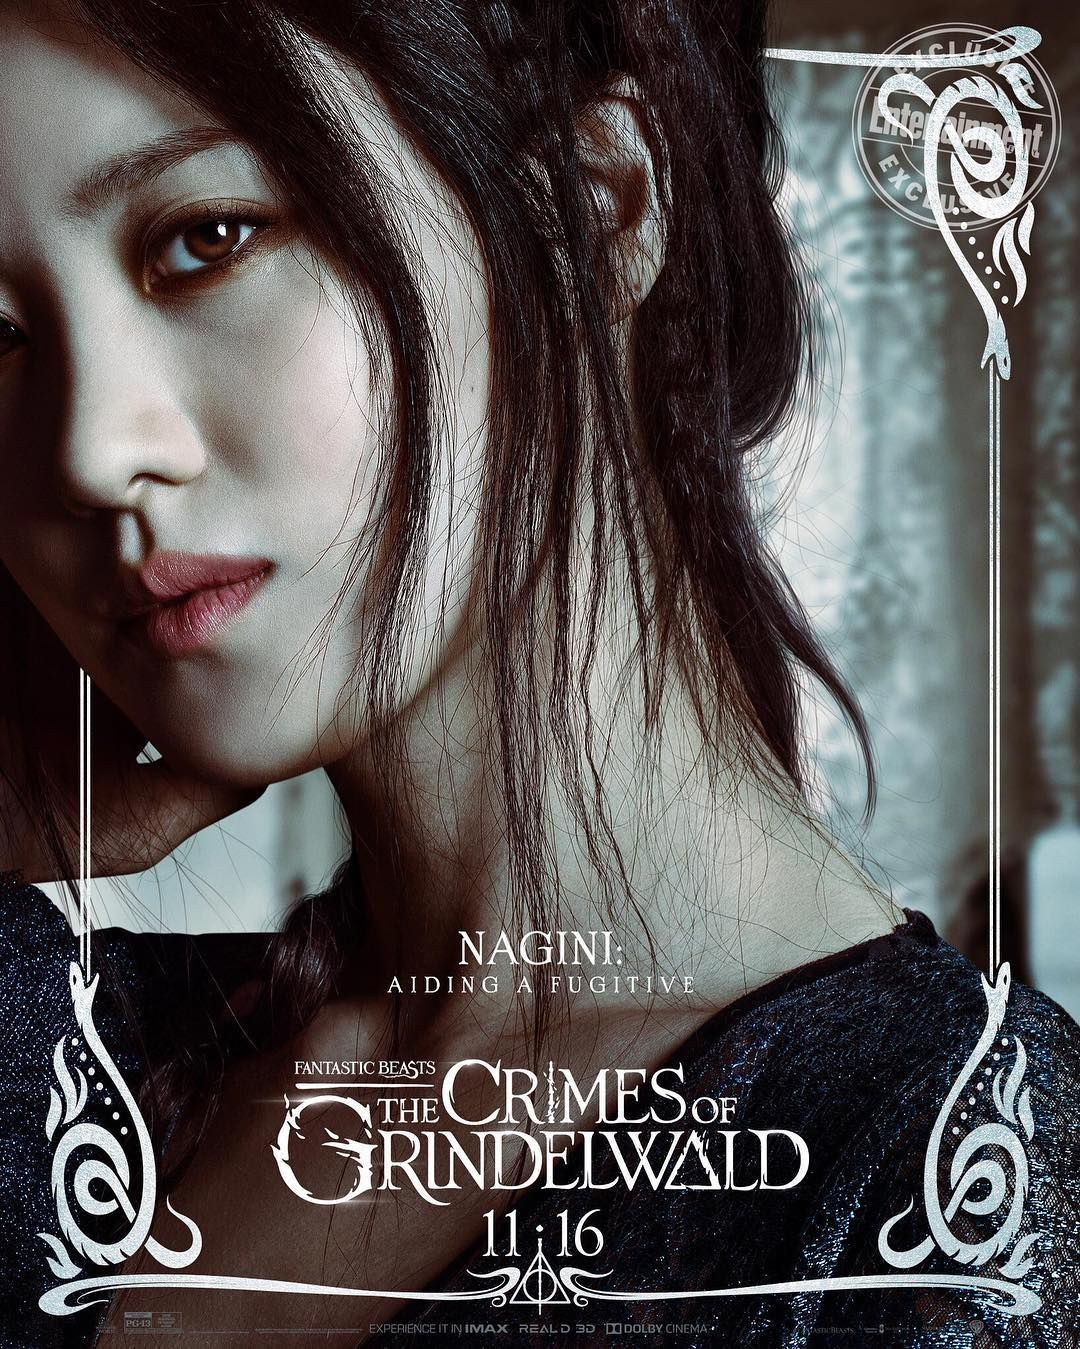 Claudia Kim In Fantastic Beasts The Crimes Of Grindelwald Is